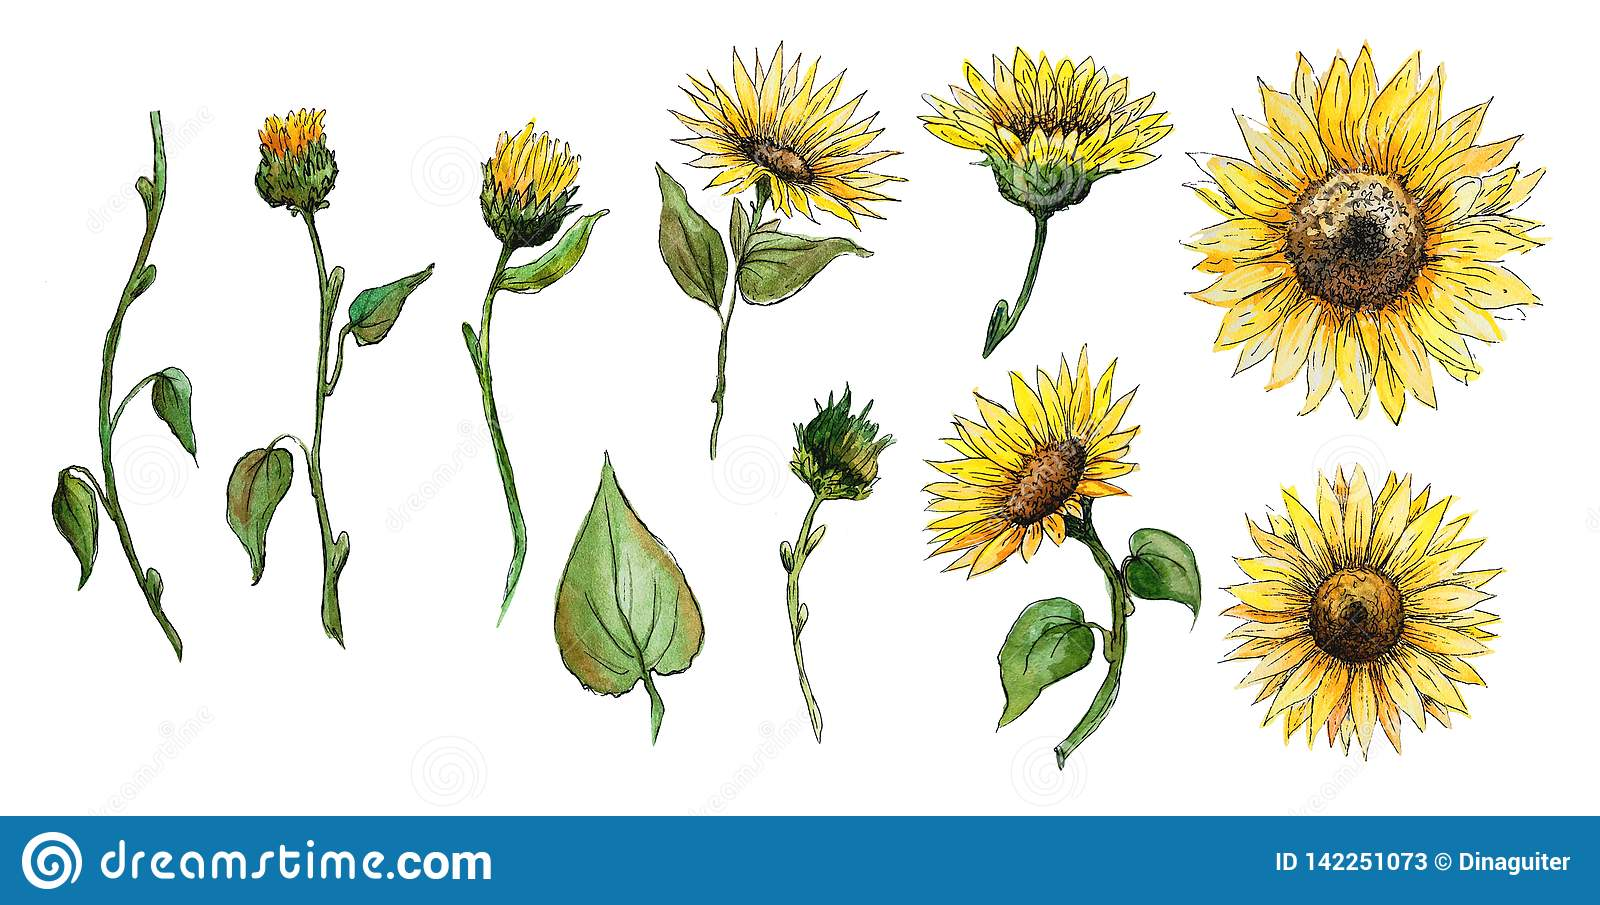 Set of elements flowers, buds, stalks of a sunflower watercolor graphics isolated